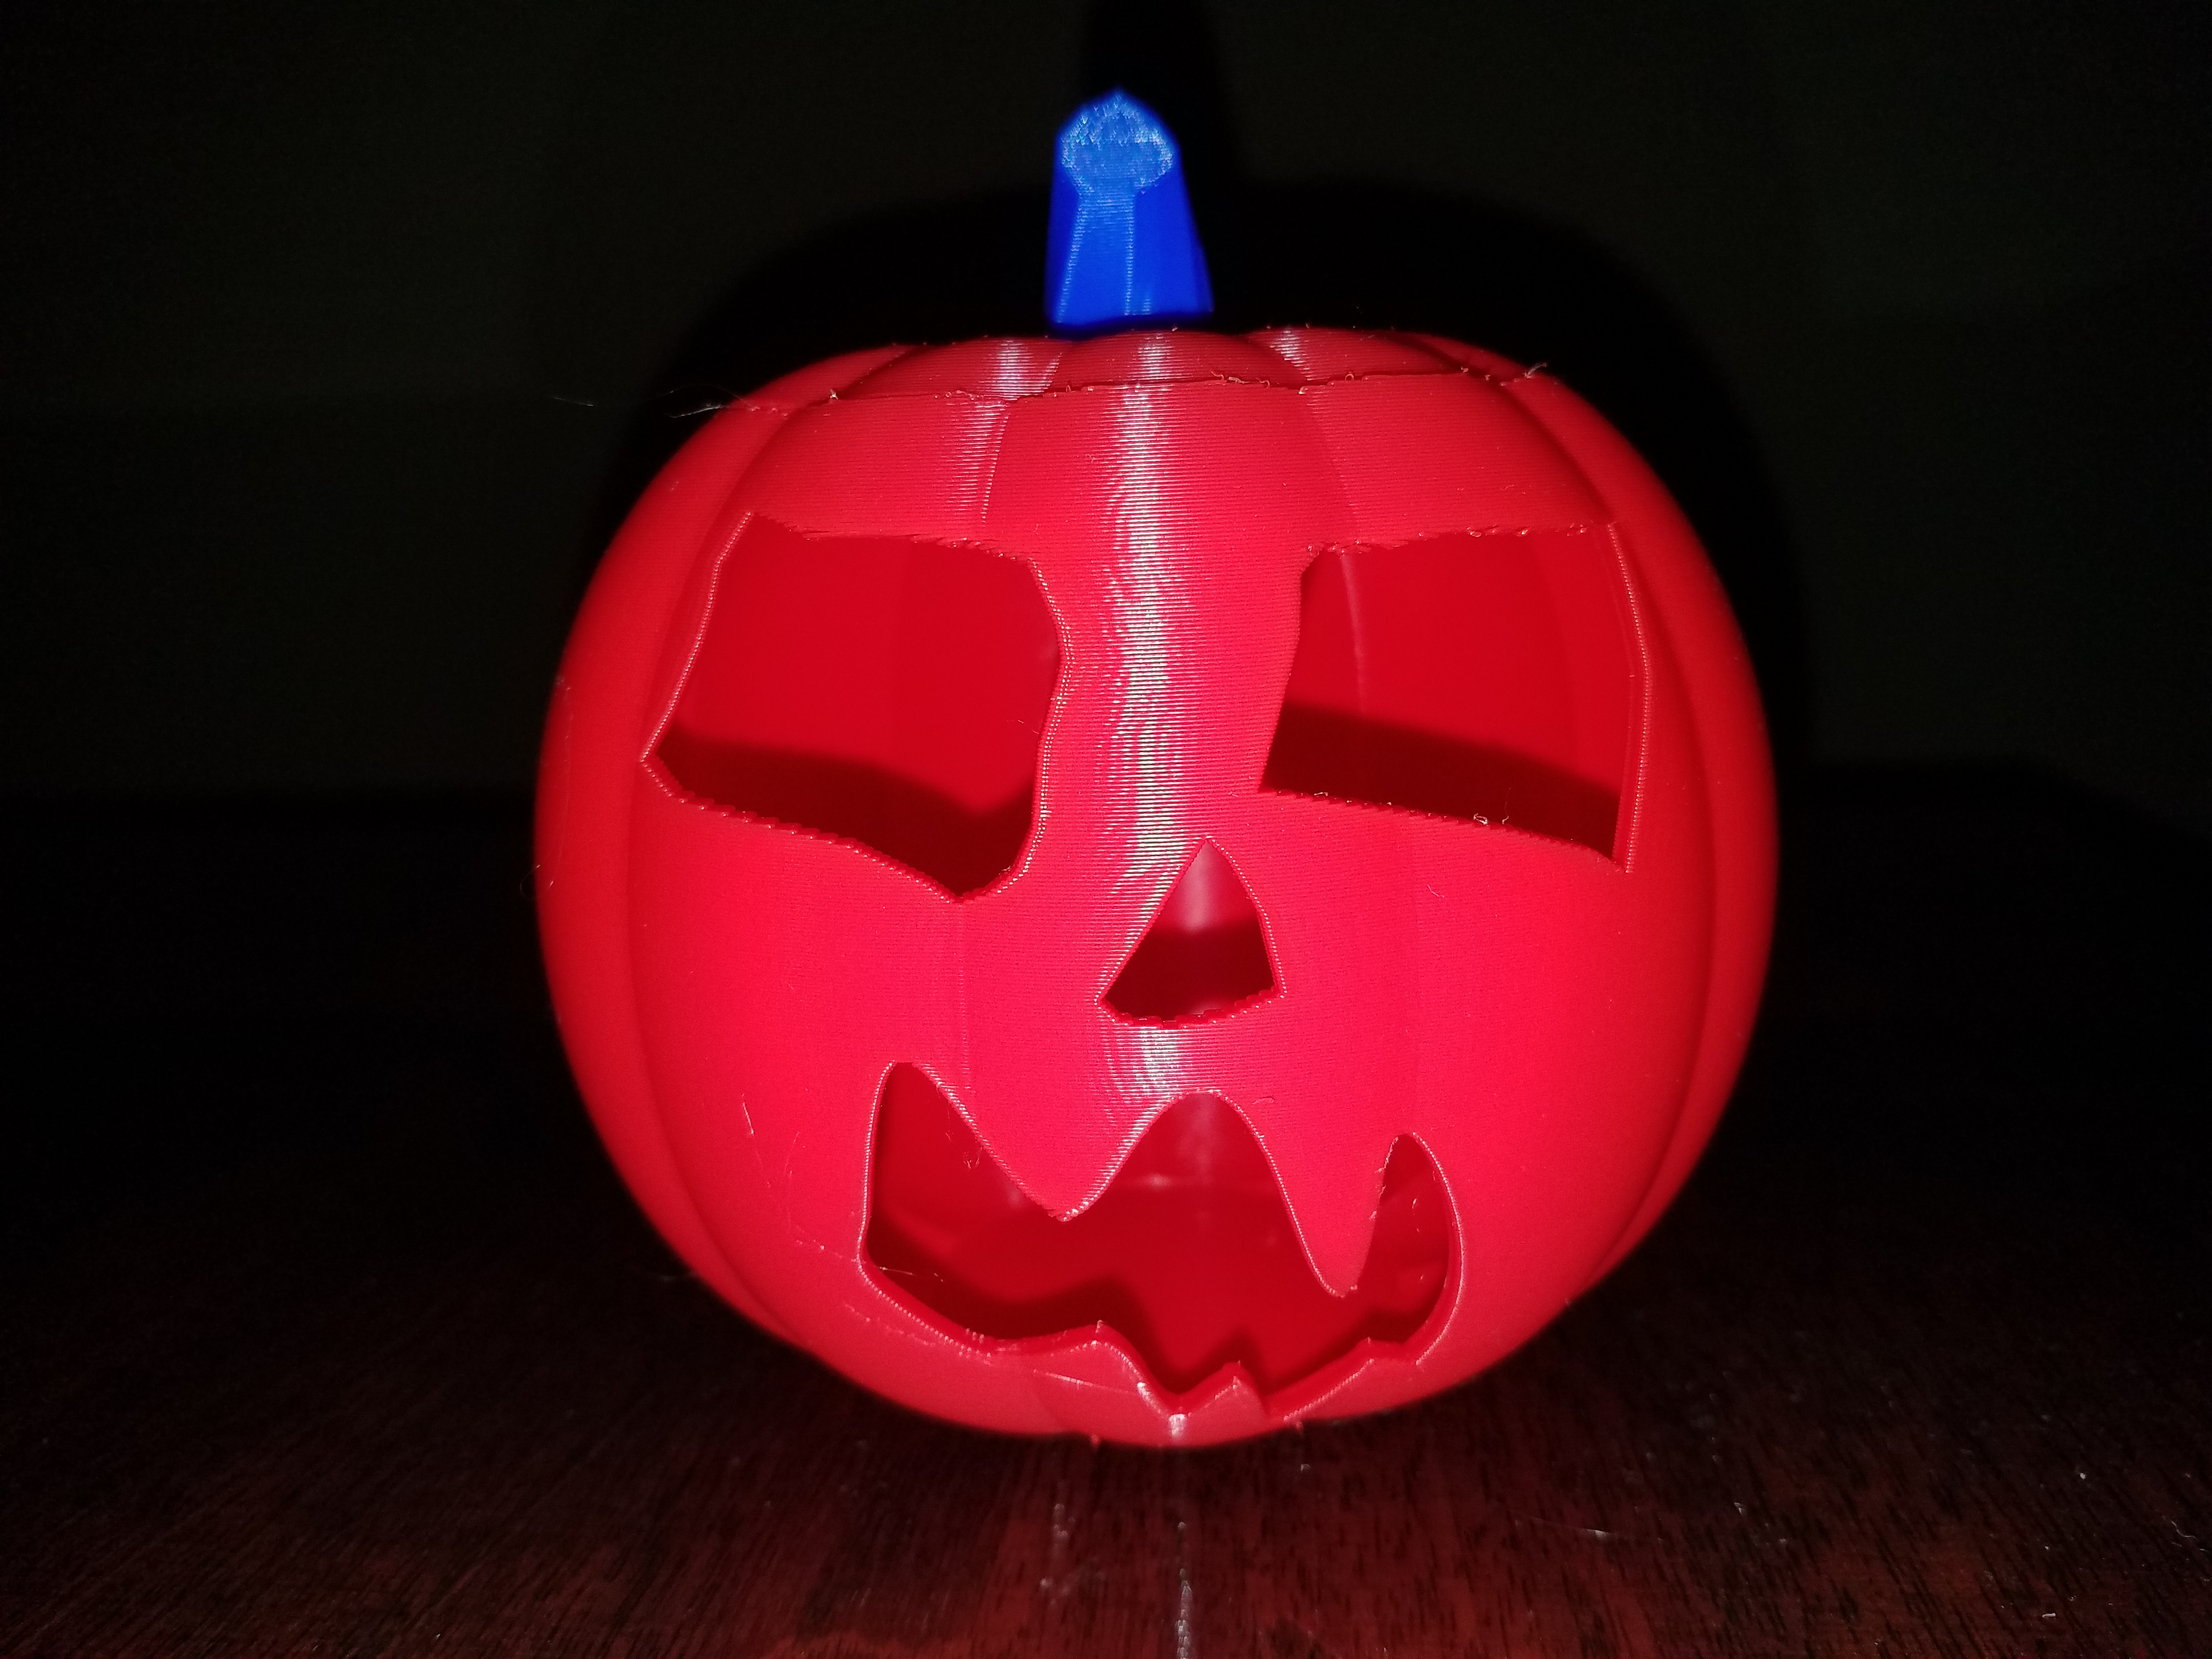 20191029_190622.jpg Download STL file Jack-O'-Lantern Scary Face • Template to 3D print, abbymath